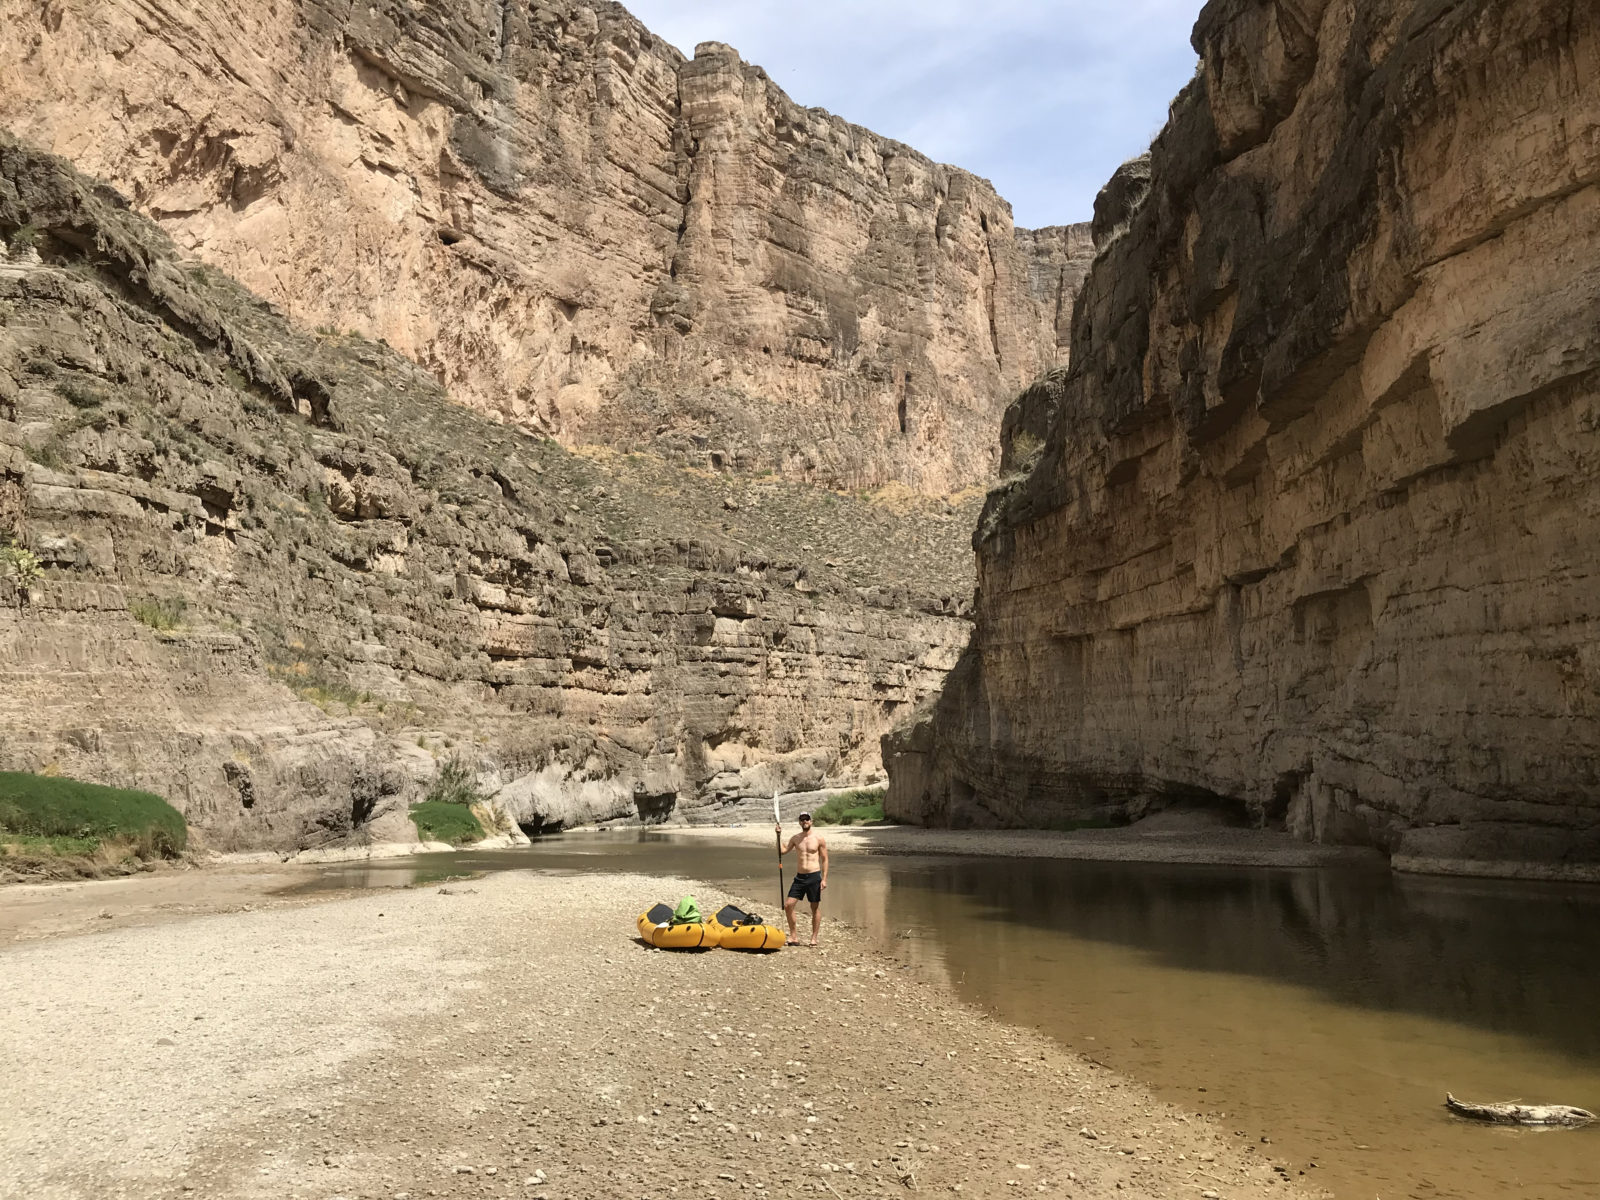 Sandbar Break in the Canyon